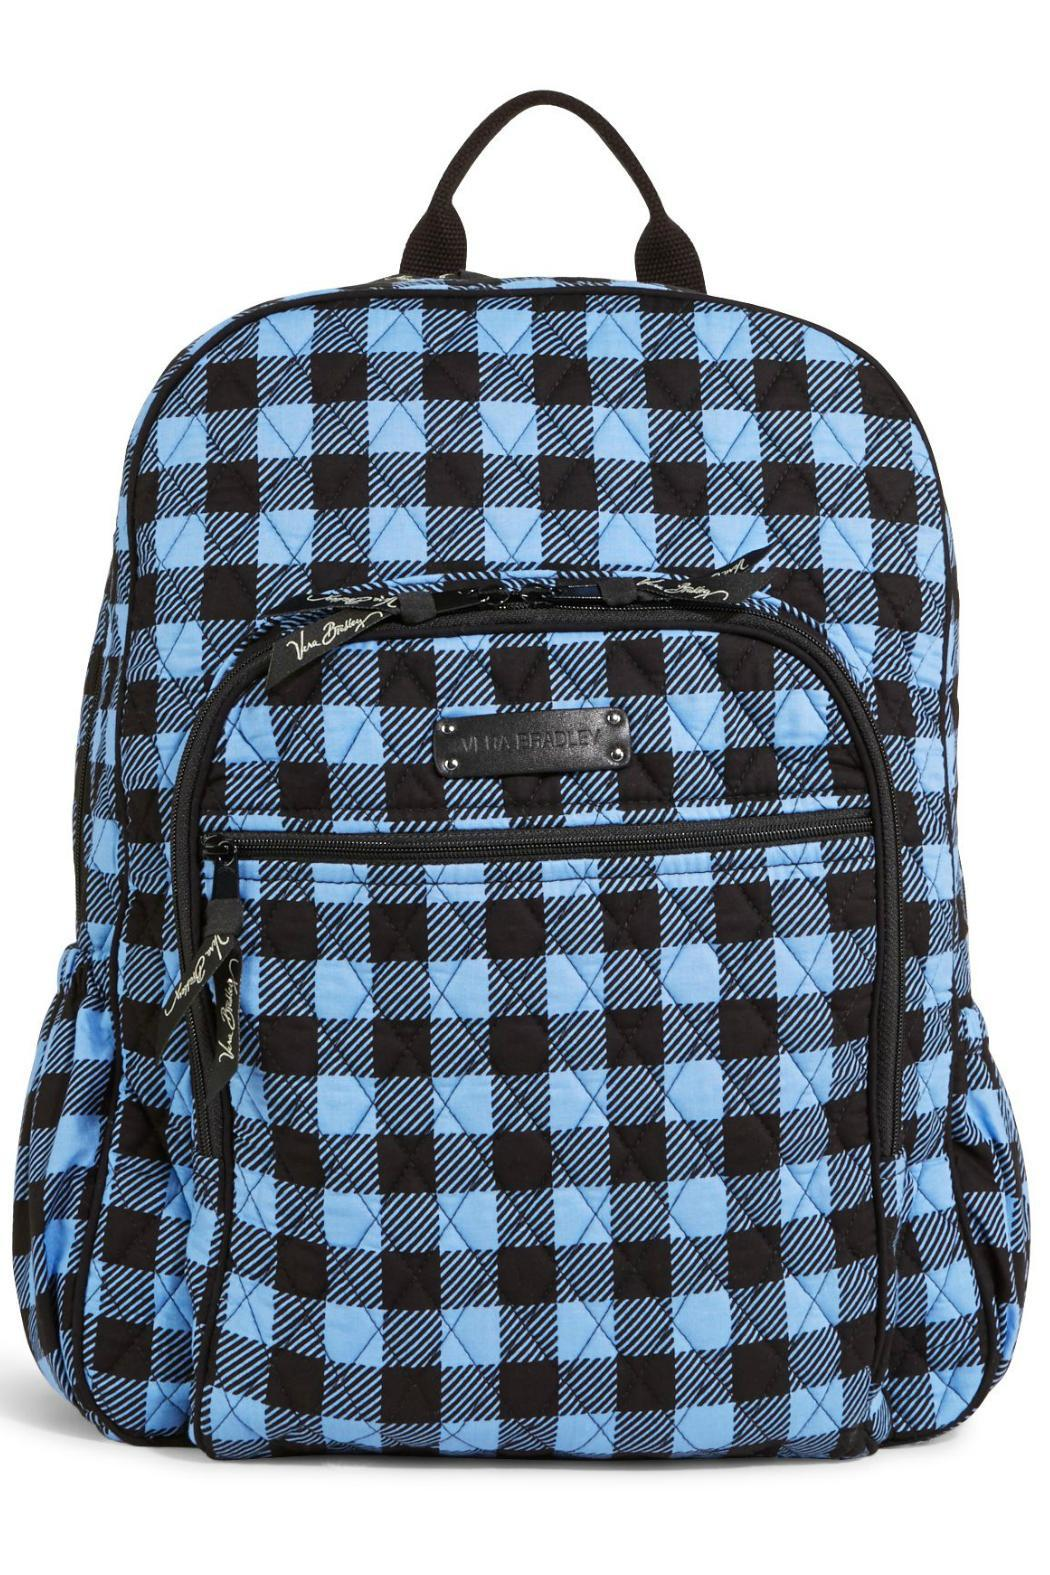 Vera Bradley Alpine Check Backpack - Front Cropped Image